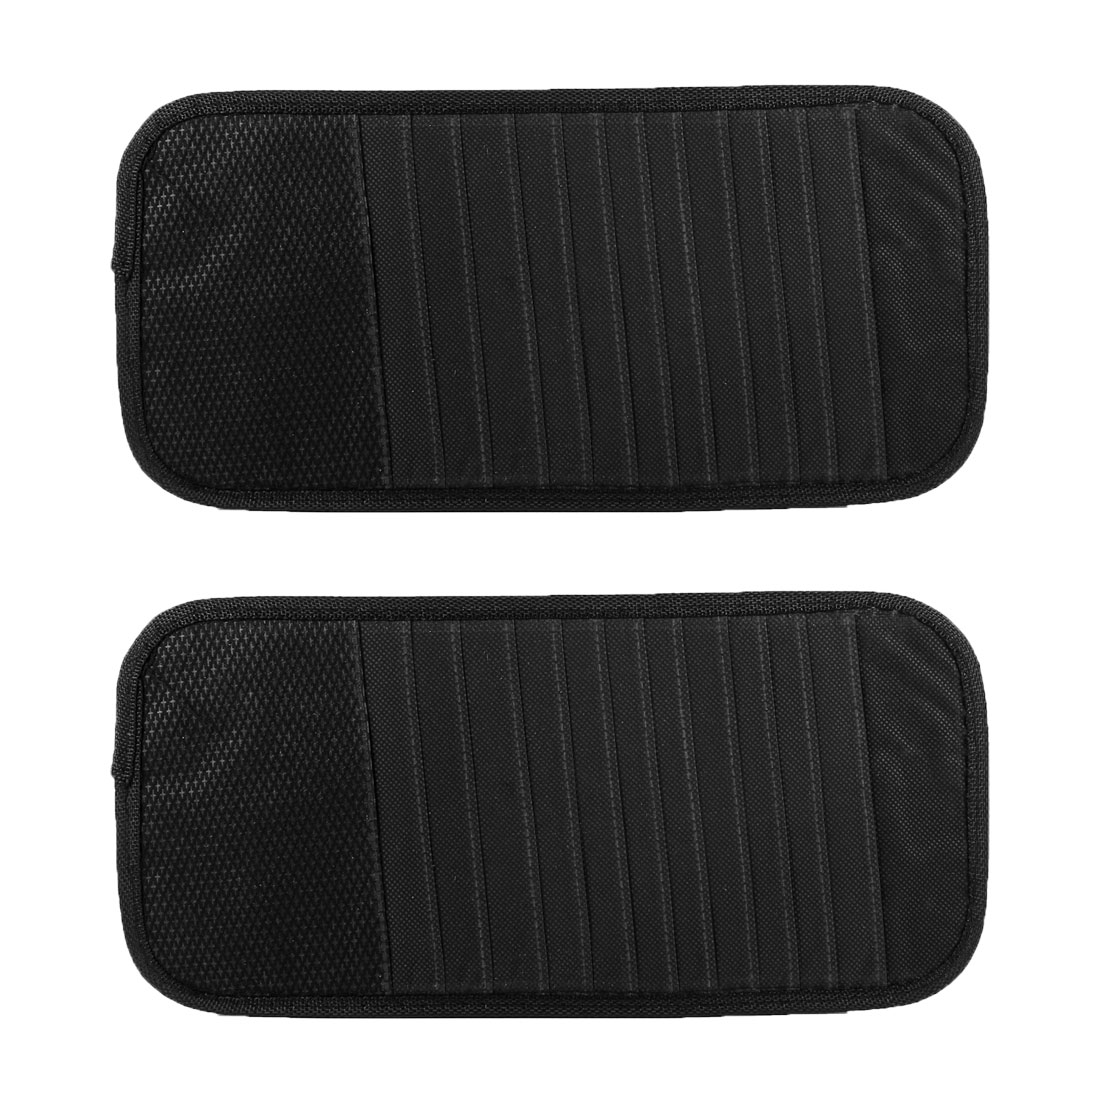 2pcs Balck Sun Visor 12 Compartments CD DVD Holder Case Cotaniner for Car Auto